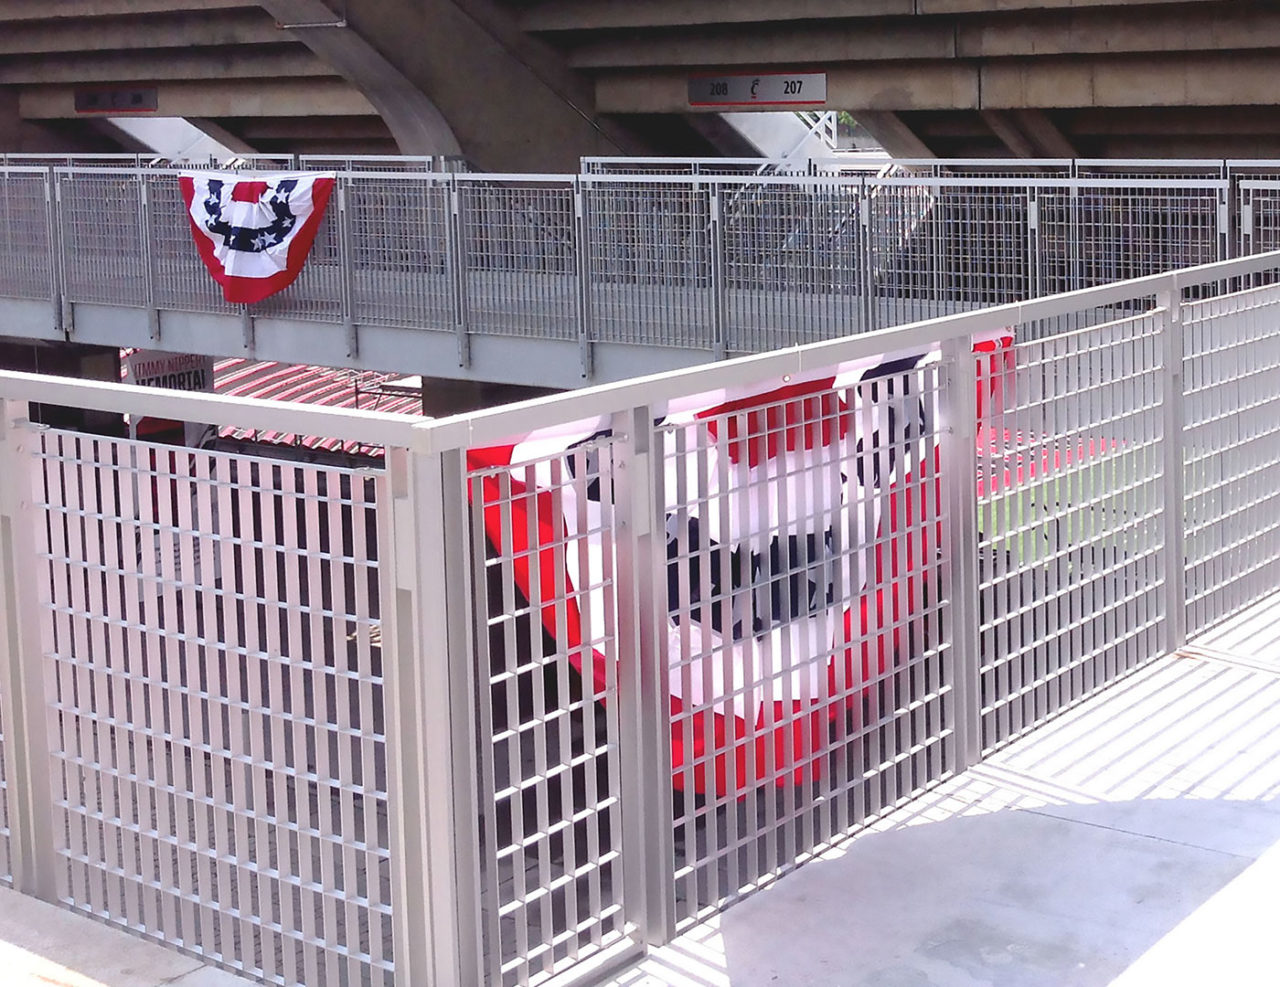 Gridguard grated railing on elevated walkways at college football stadium